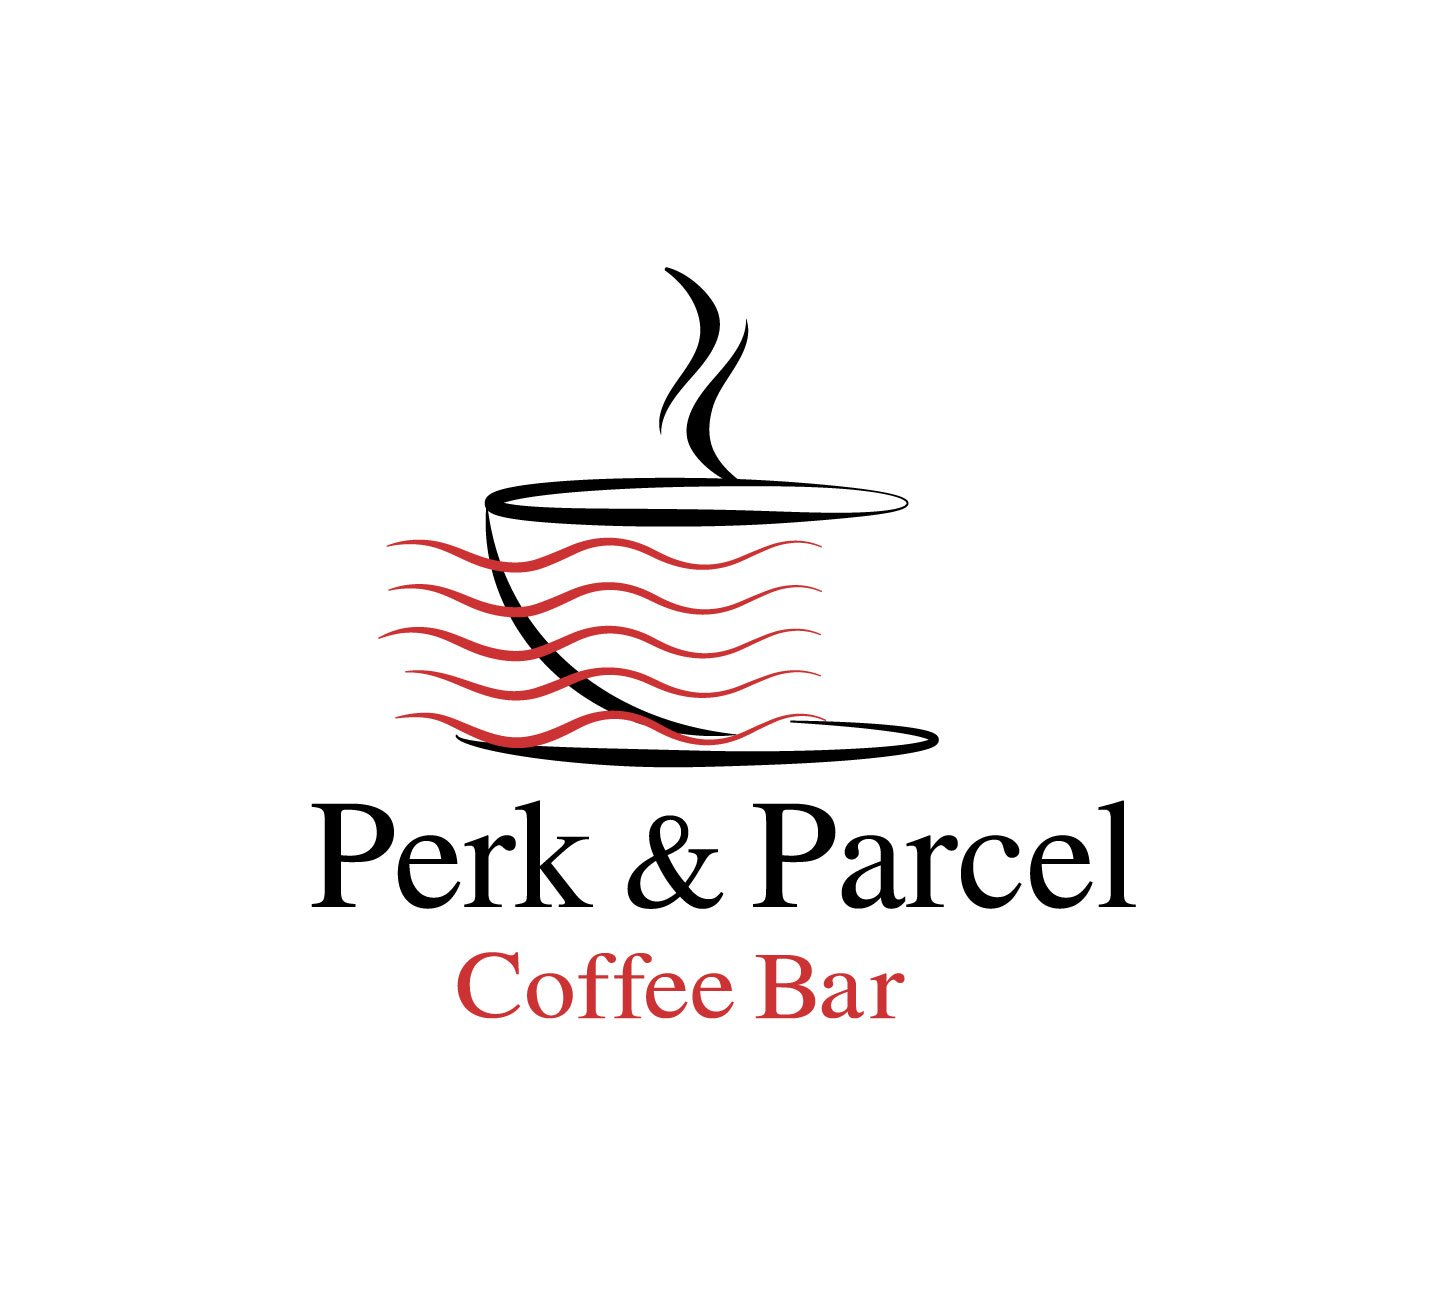 Perk-and-parcel-Branding-Apparel